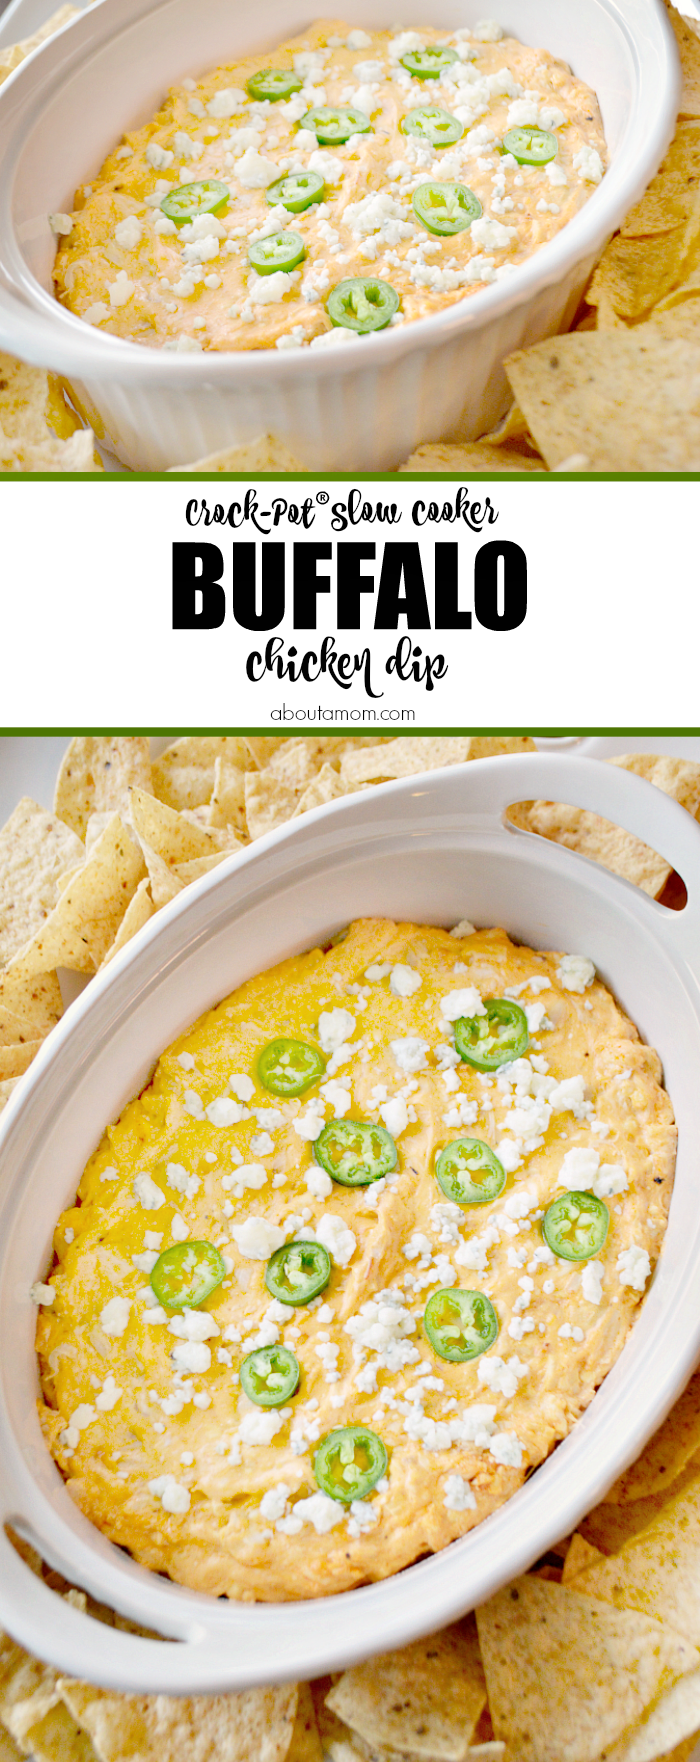 This cheesy and delicious Crock-Pot® Slow Cooker Buffalo Chicken Dip is perfect for your next game day gathering or party. It encompasses all the flavors of your favorite buffalo chicken wings.